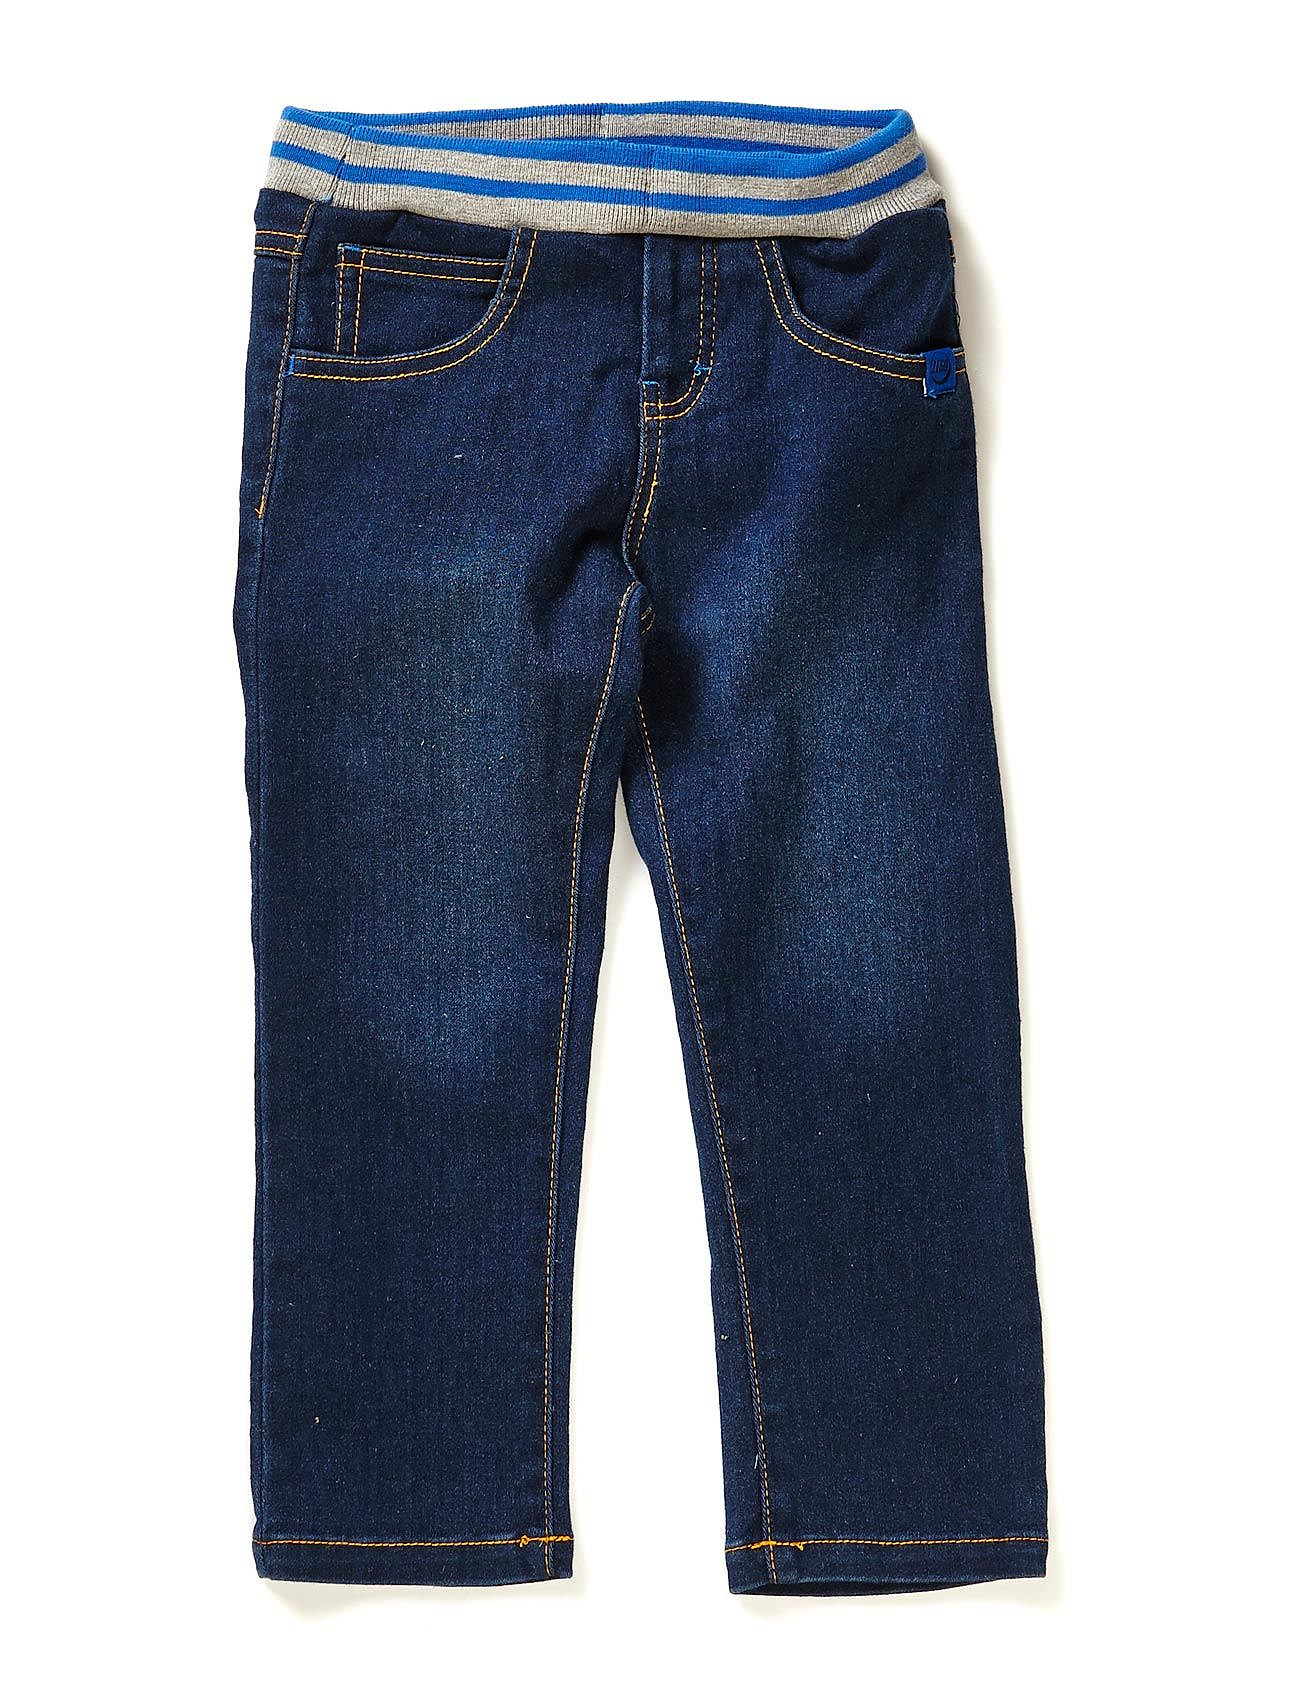 Lego wear IMAGINE 504 - JEANS - BLUE